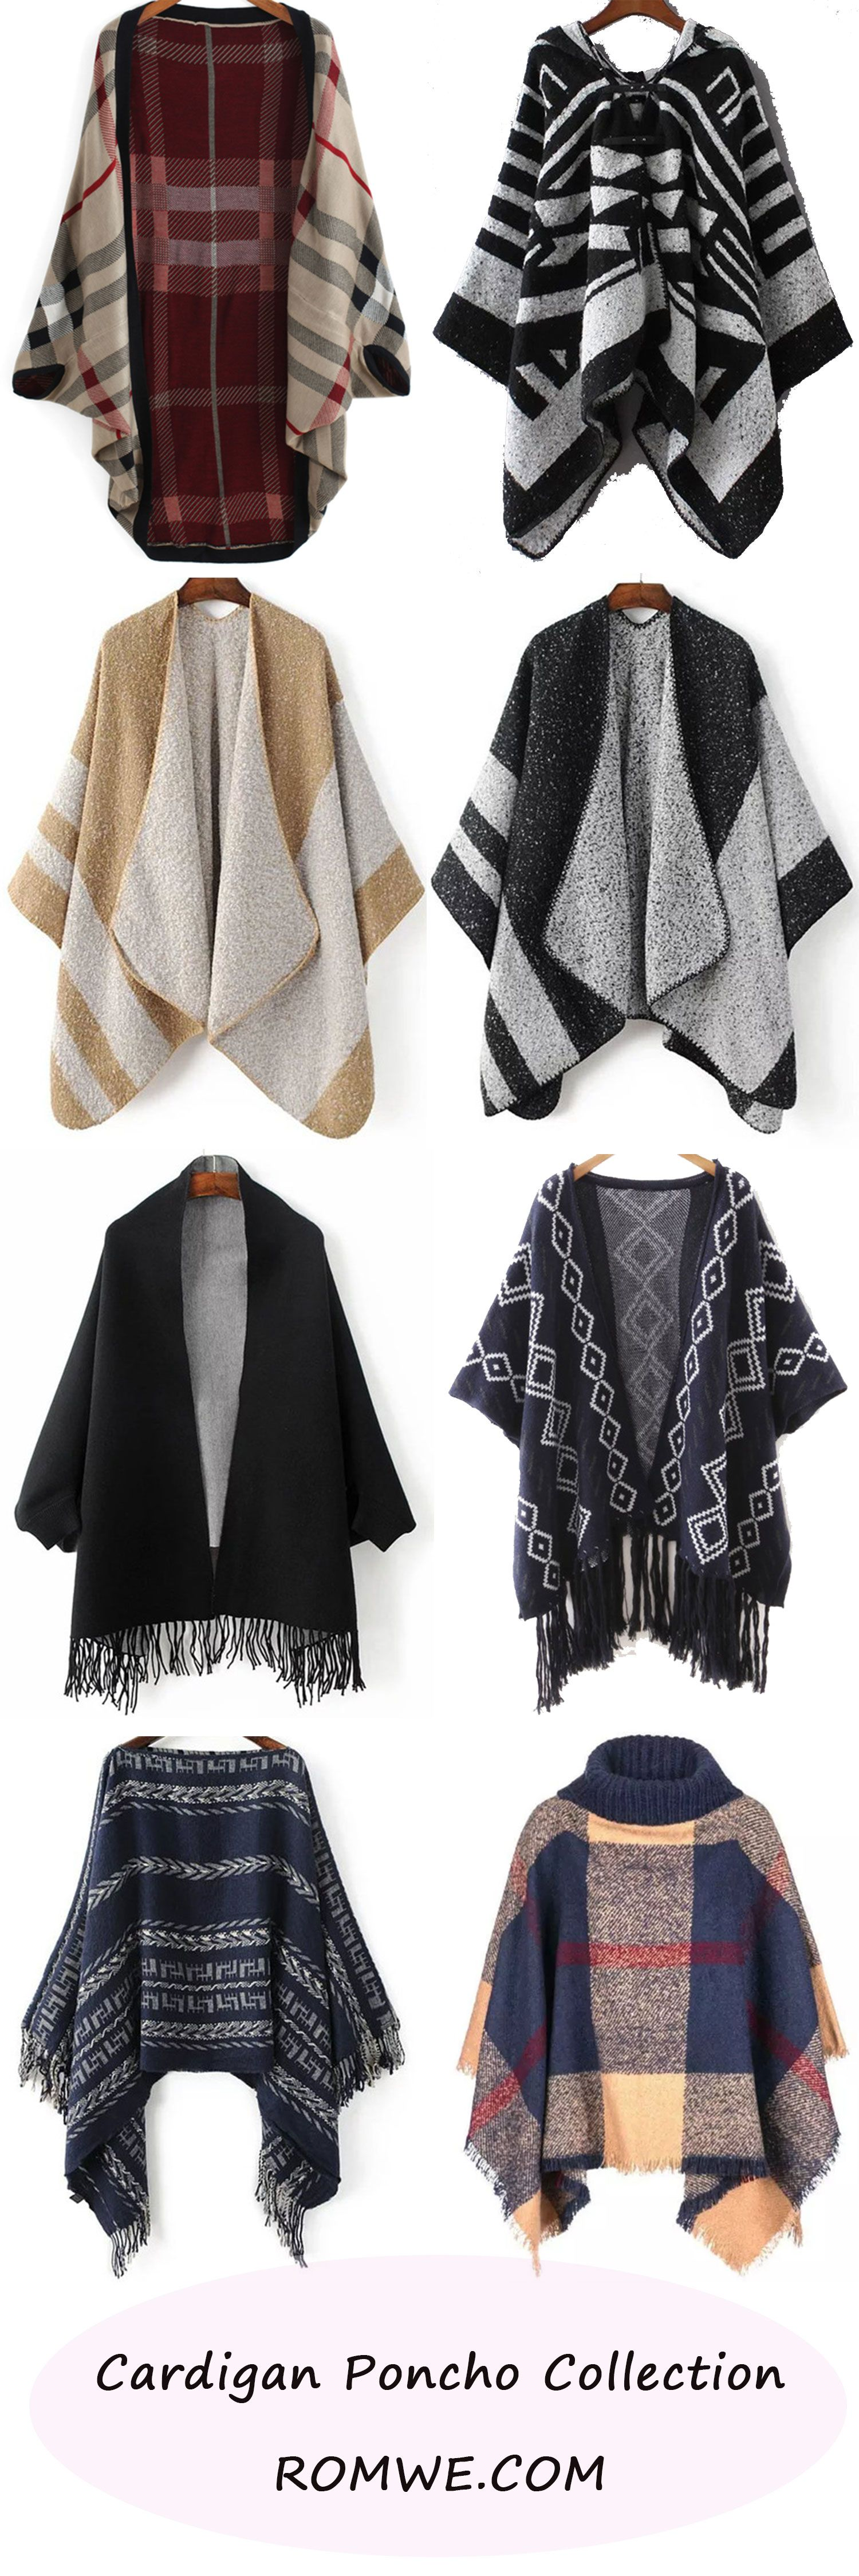 Cardigan Poncho Collection 2016 - romwe.com | DressMeUp in 2019 ...